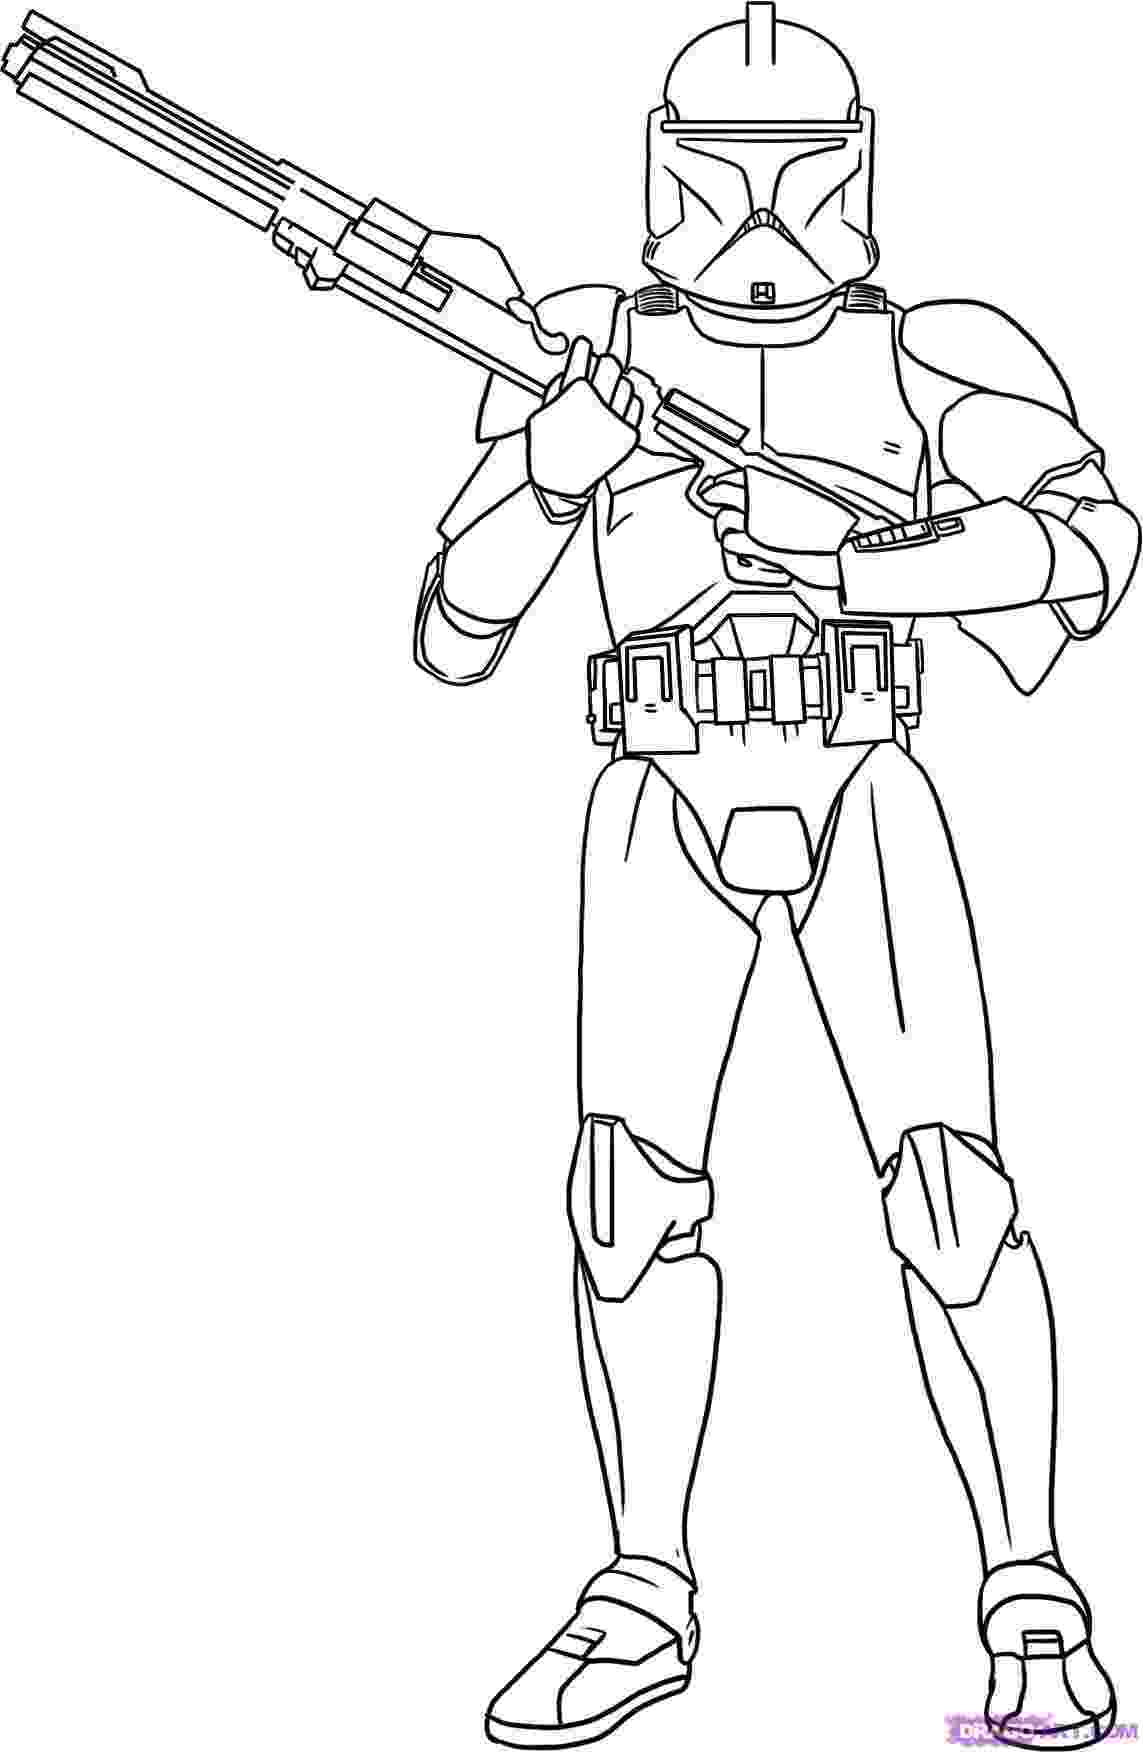 free printable star wars coloring pages star wars coloring pages free printable star wars printable wars star coloring pages free